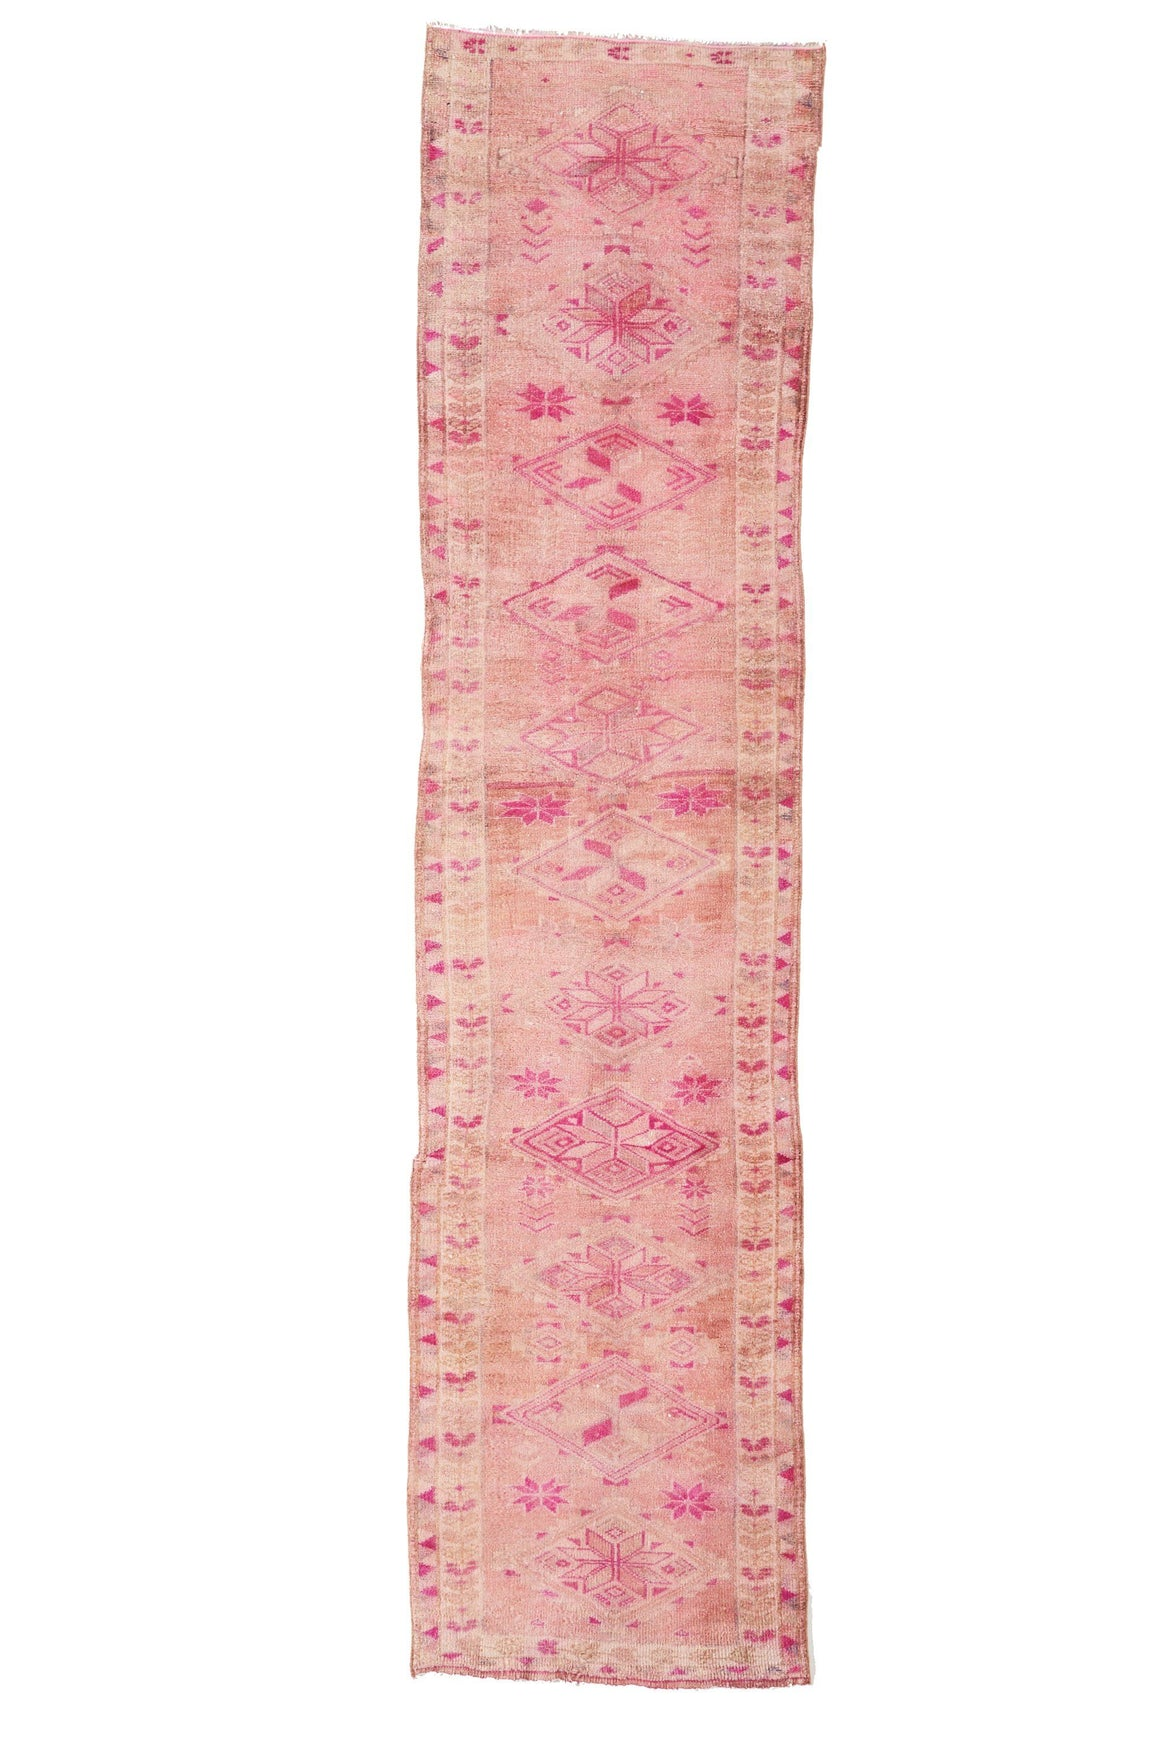 'Daydream' Vintage Turkish Runner - 2'10.5'' x 12'2'' - Canary Lane - Curated Textiles